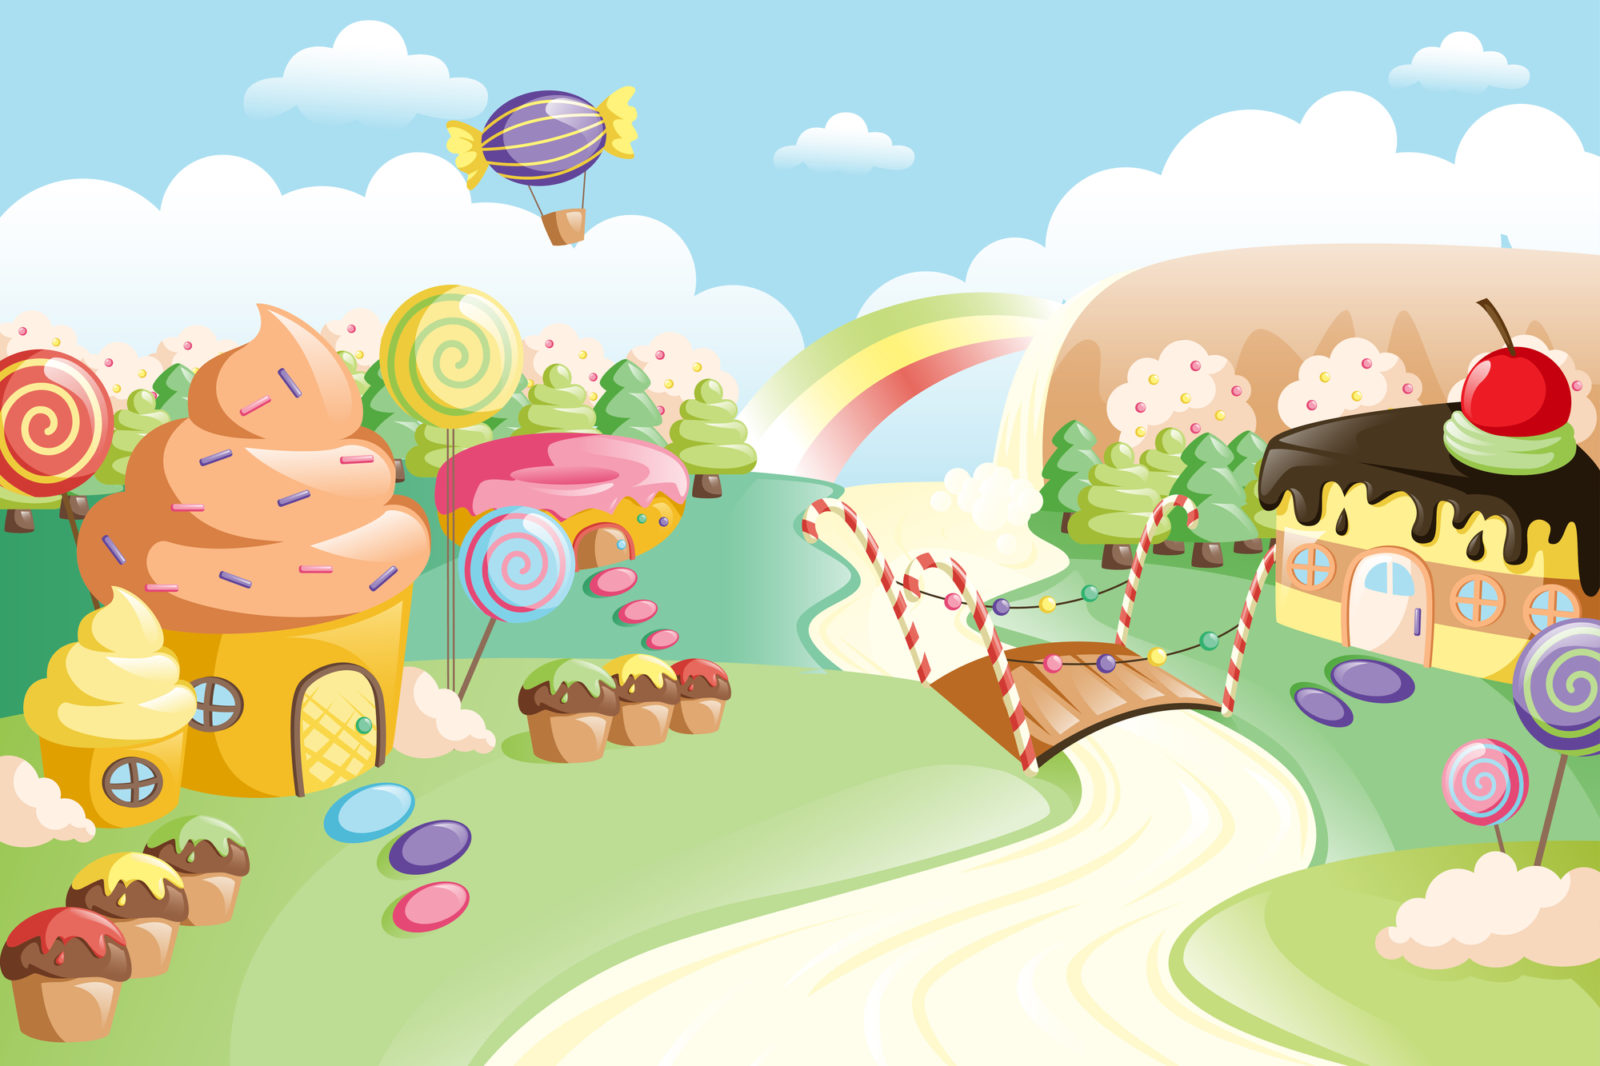 Candyland theme for events